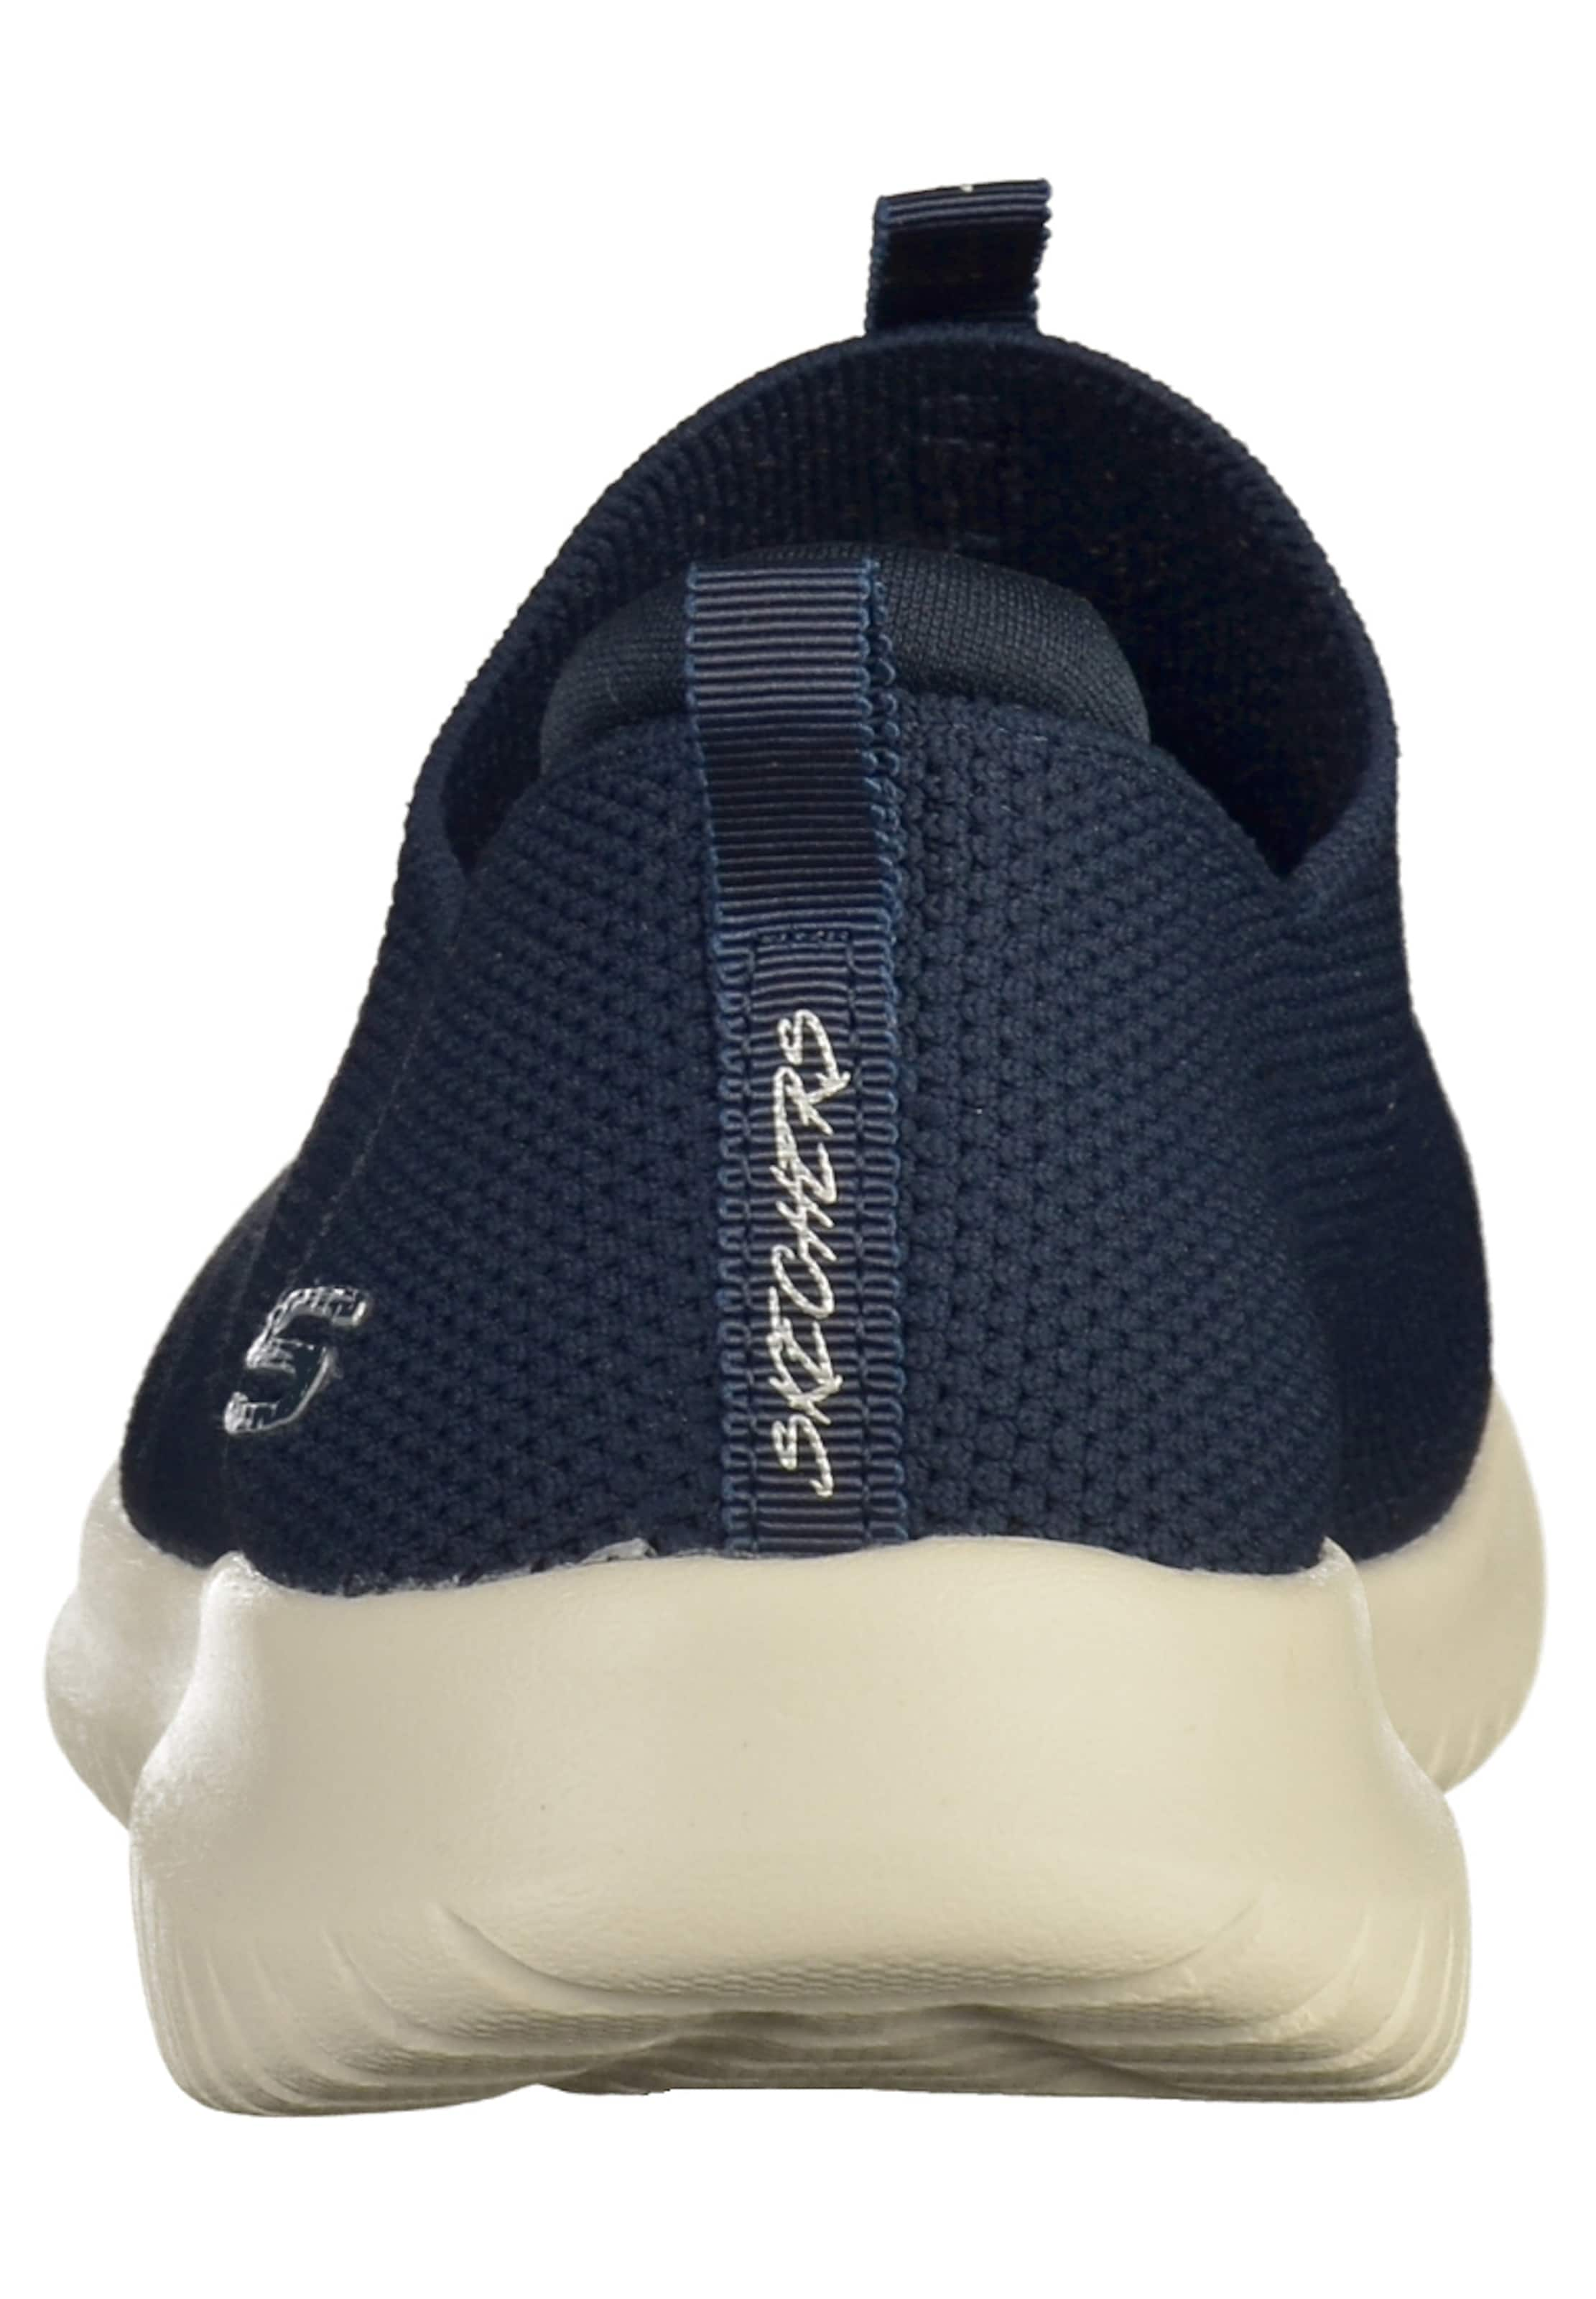 En Skechers Baskets Basses Bleu Baskets Skechers Basses dhCtsQrx